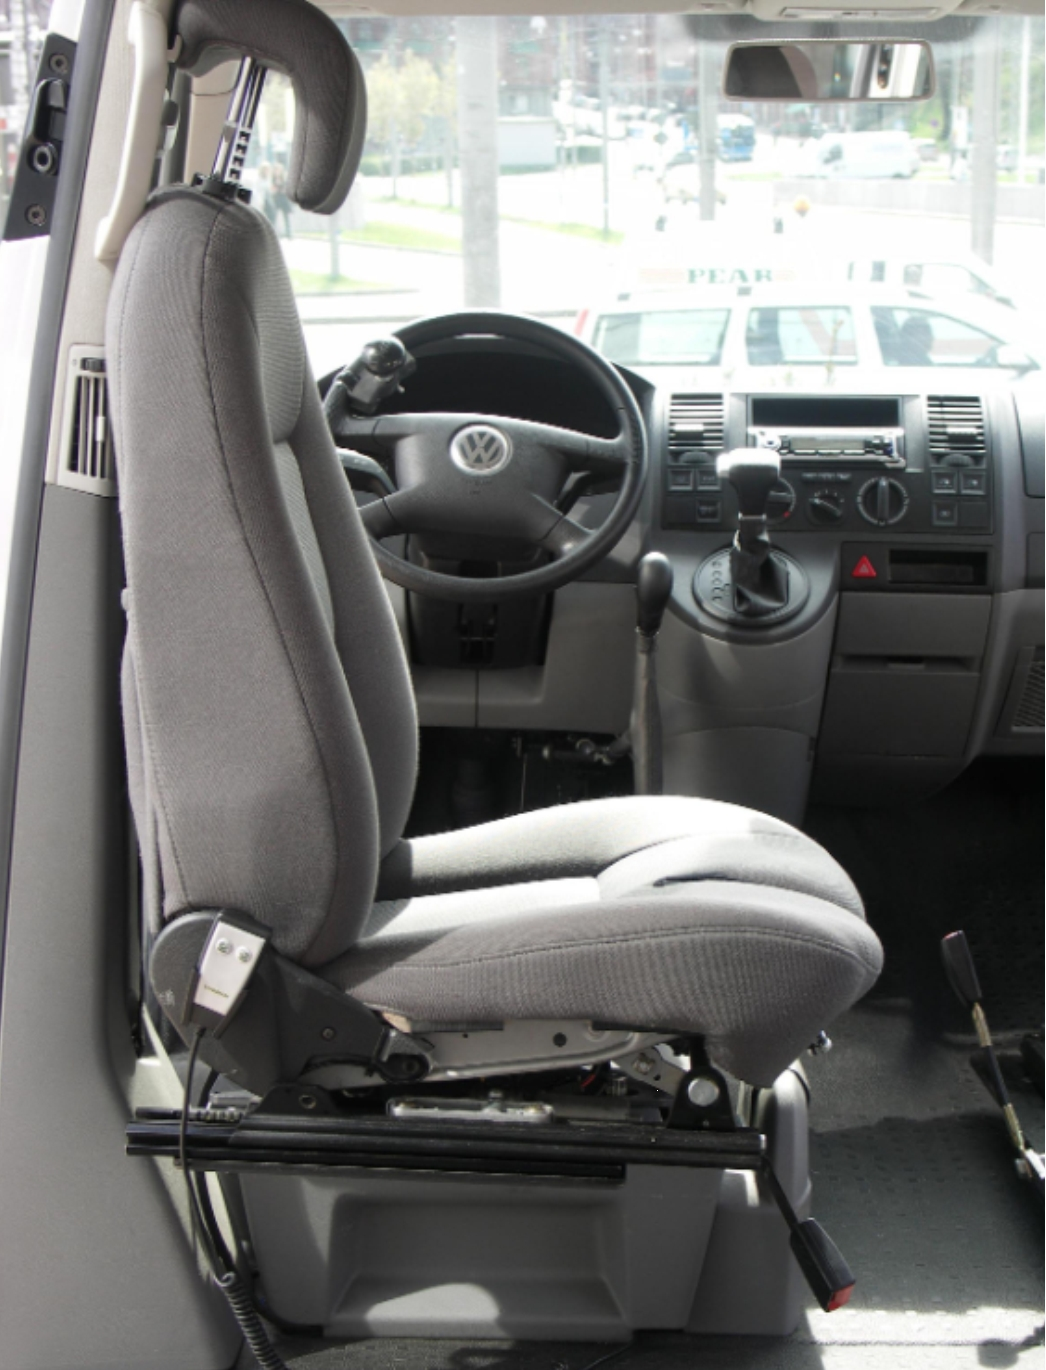 Internal transfer swivelling seat